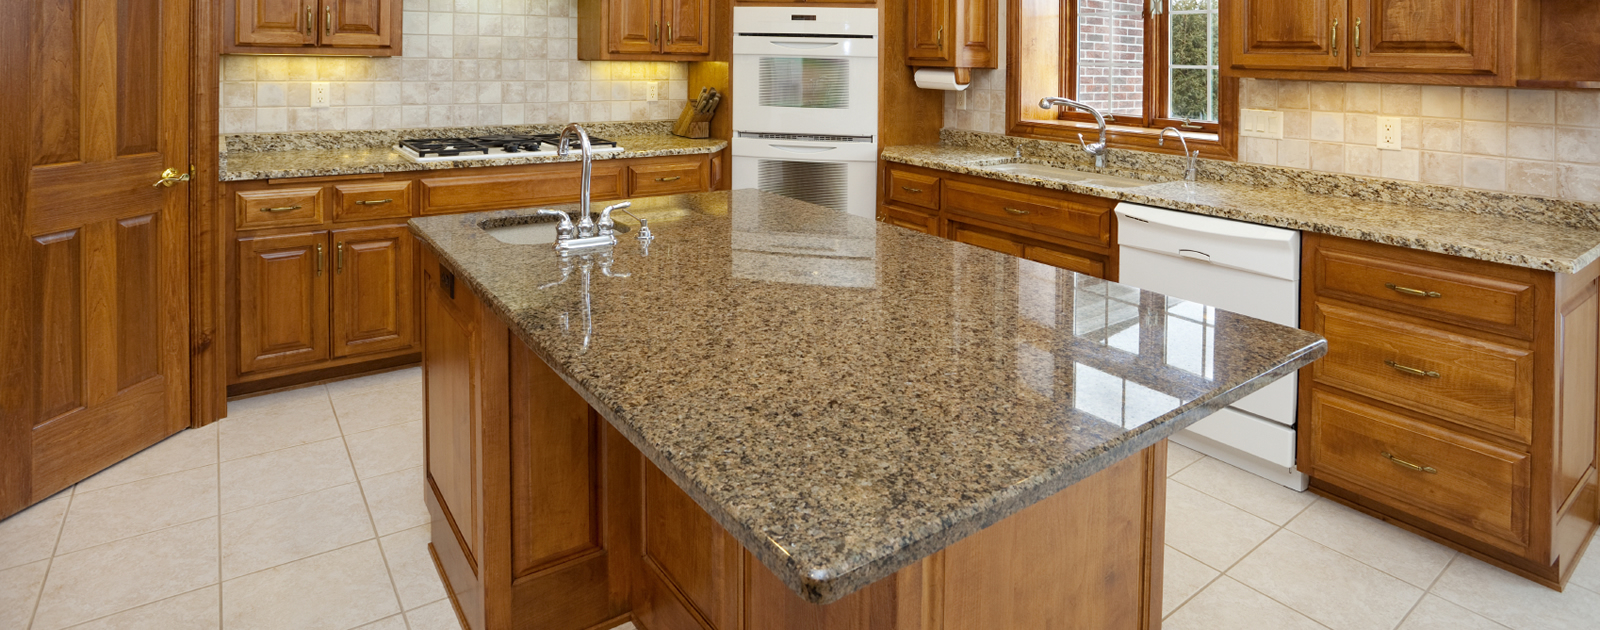 Granite Finish Countertop With Storage Luxurious Kitchen Set With Wood  Cabinetry White Ceramic Kitchen